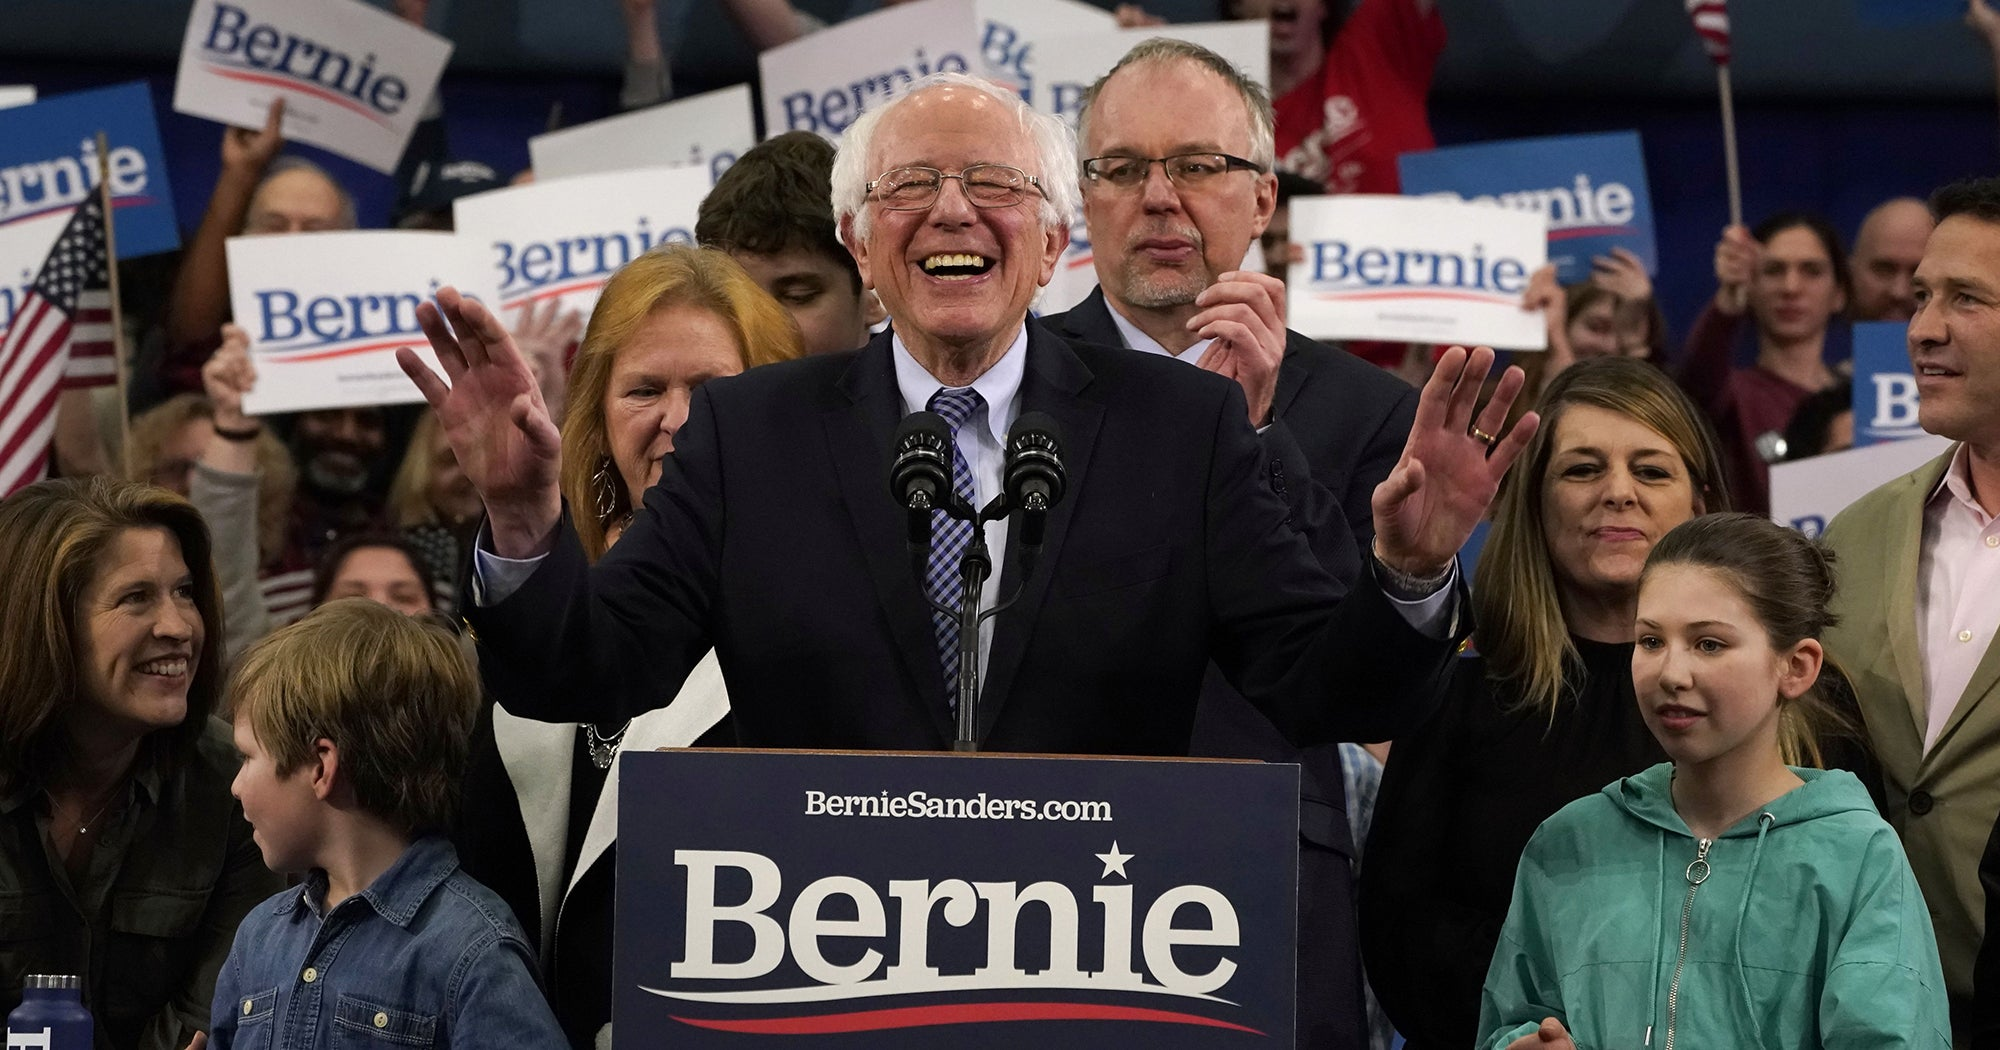 Bernie Sanders Just Won The First Primary, But Can He Still Beat Trump?